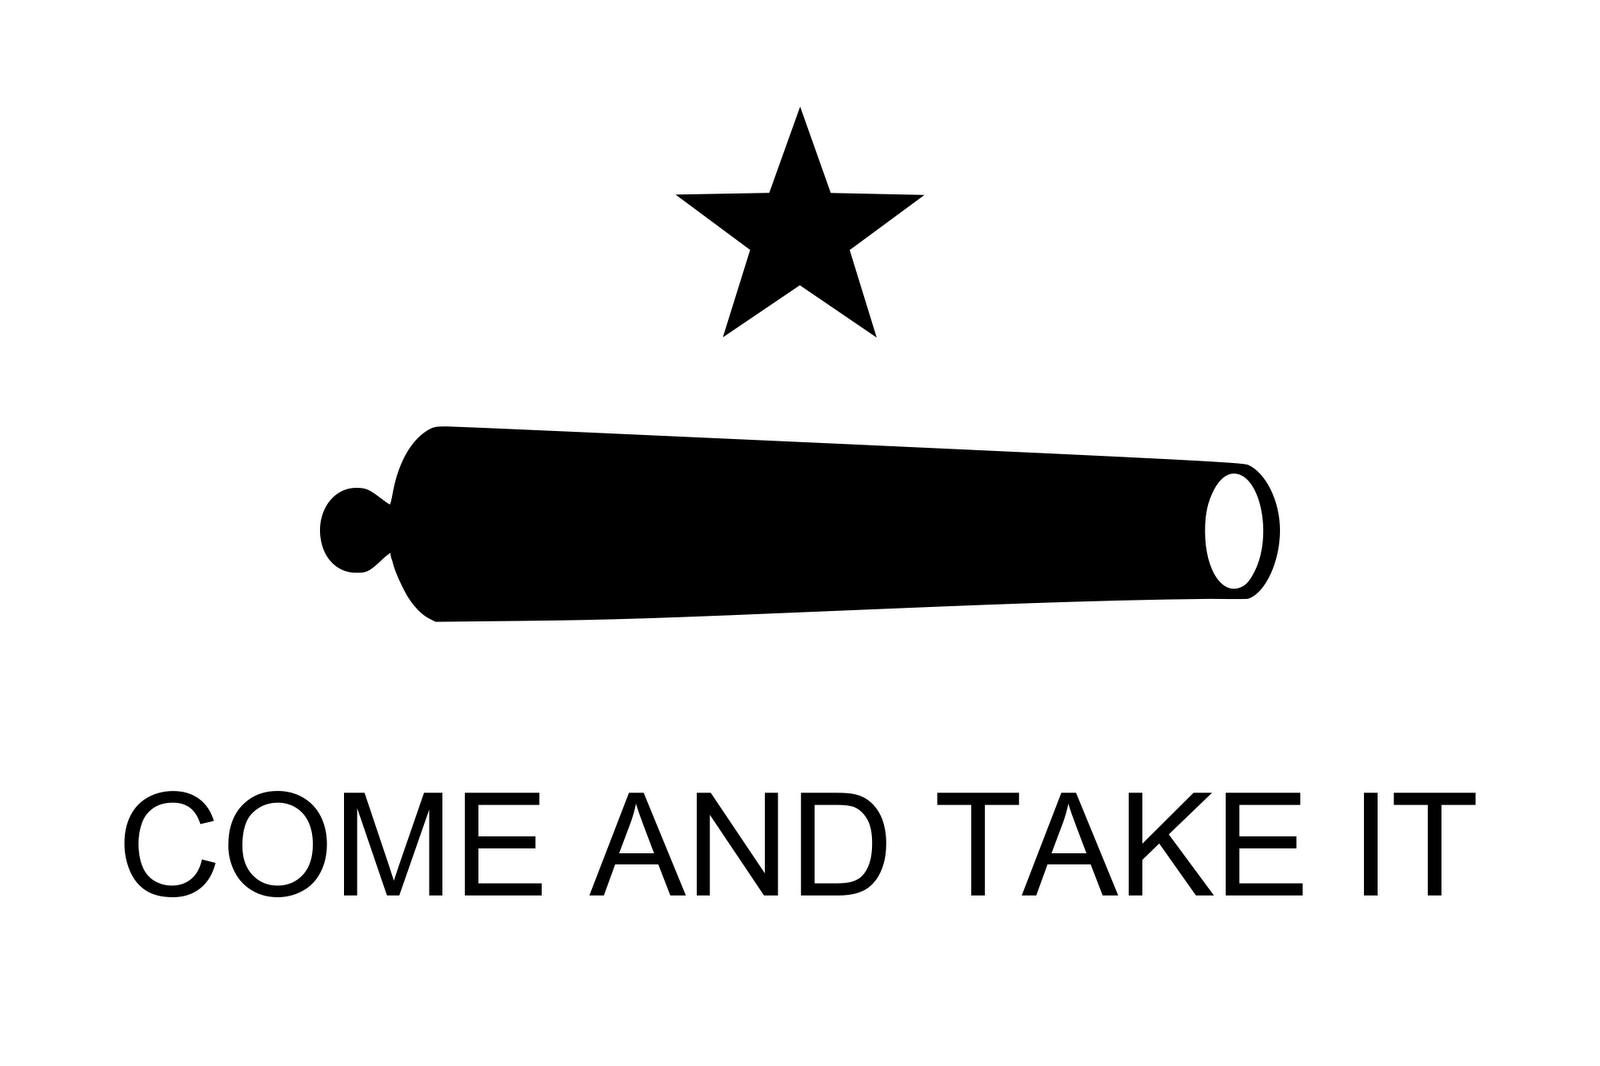 Texas Flag Come and Take It